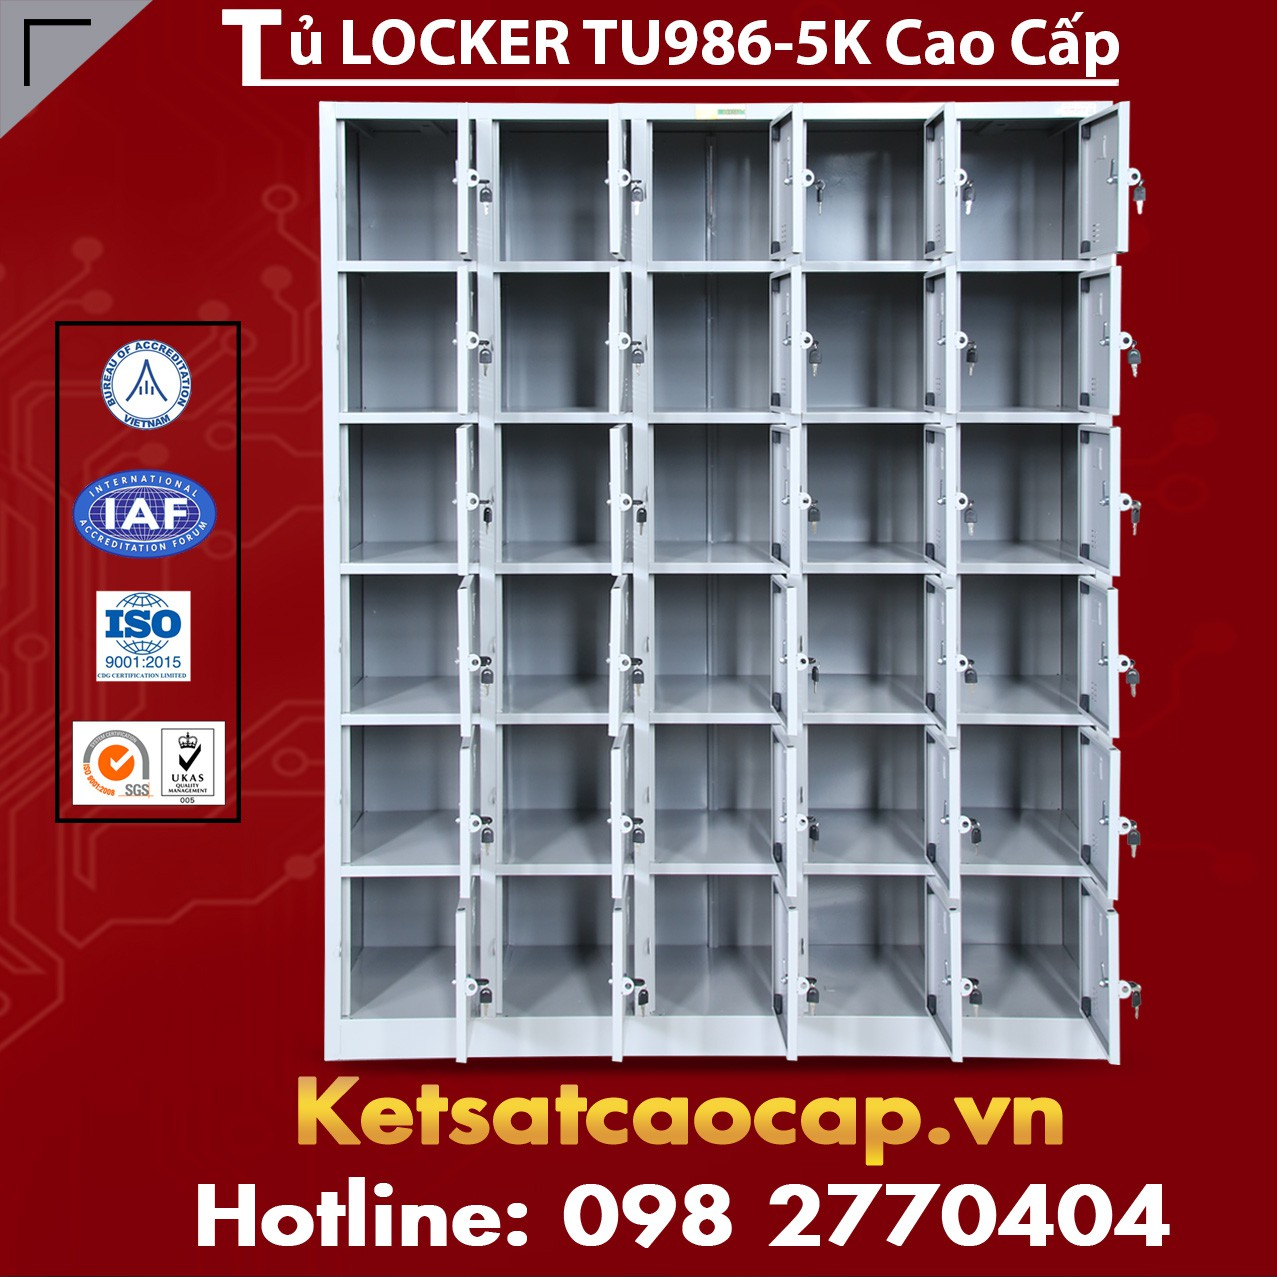 Tủ Locker TU986-5K